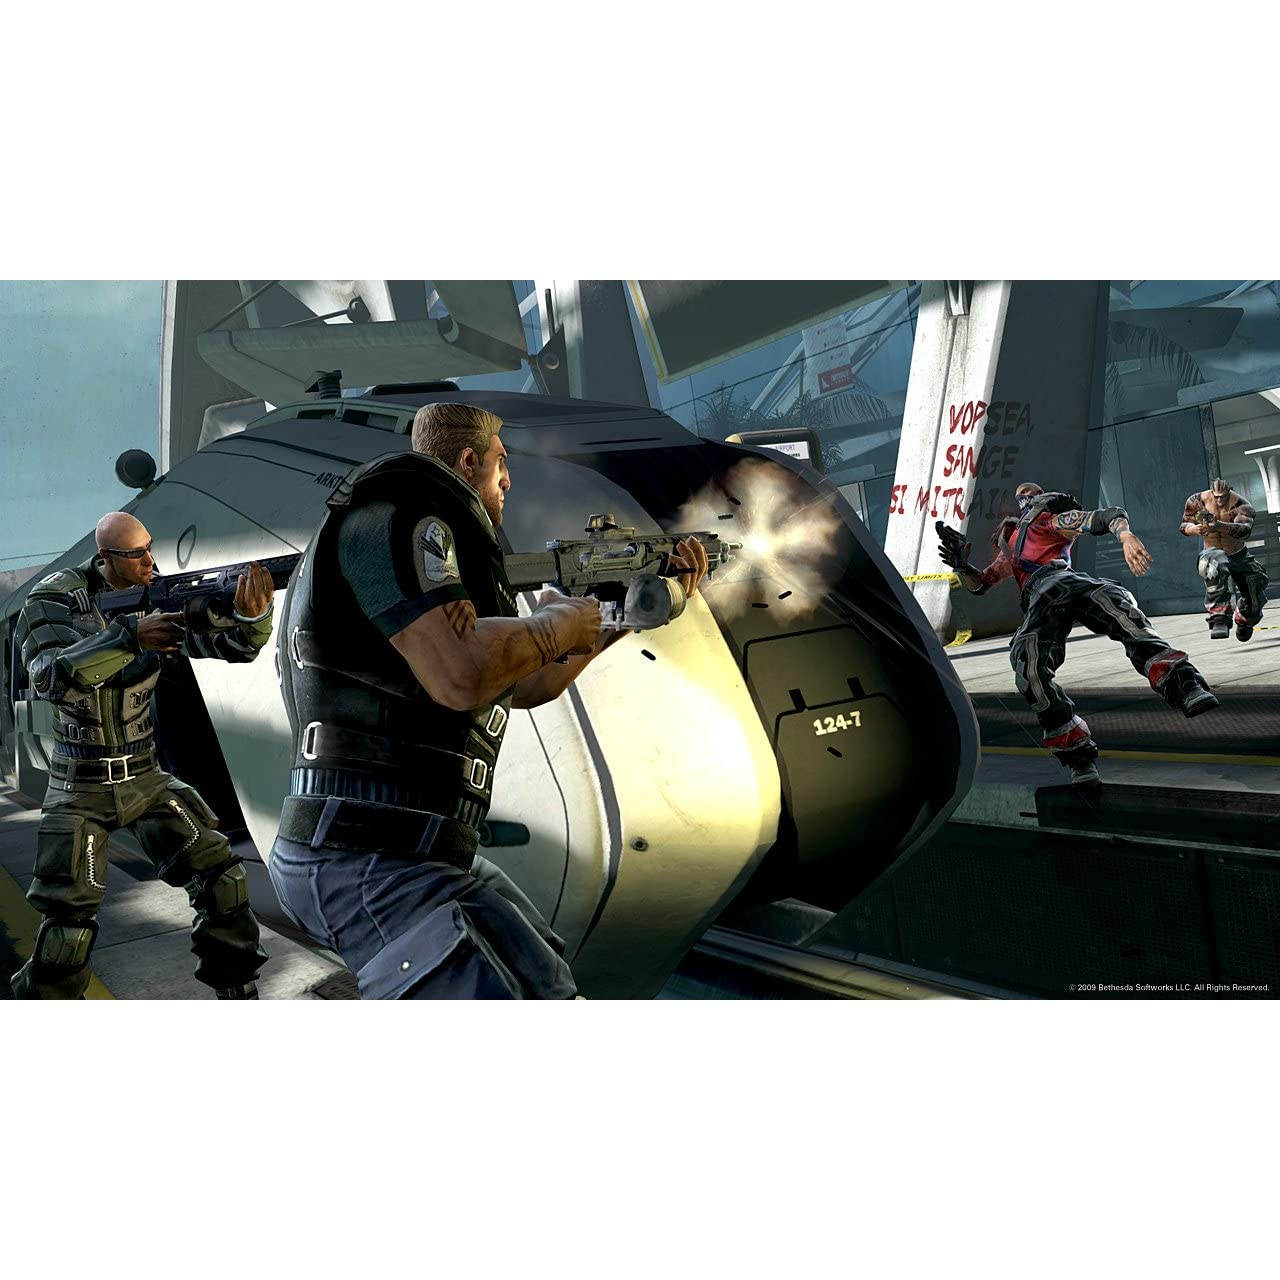 Online Game, Online Games, Video Game, Video Games, Xbox 360, PlayStation 3, PC, Action, Shooter, fps, Brink